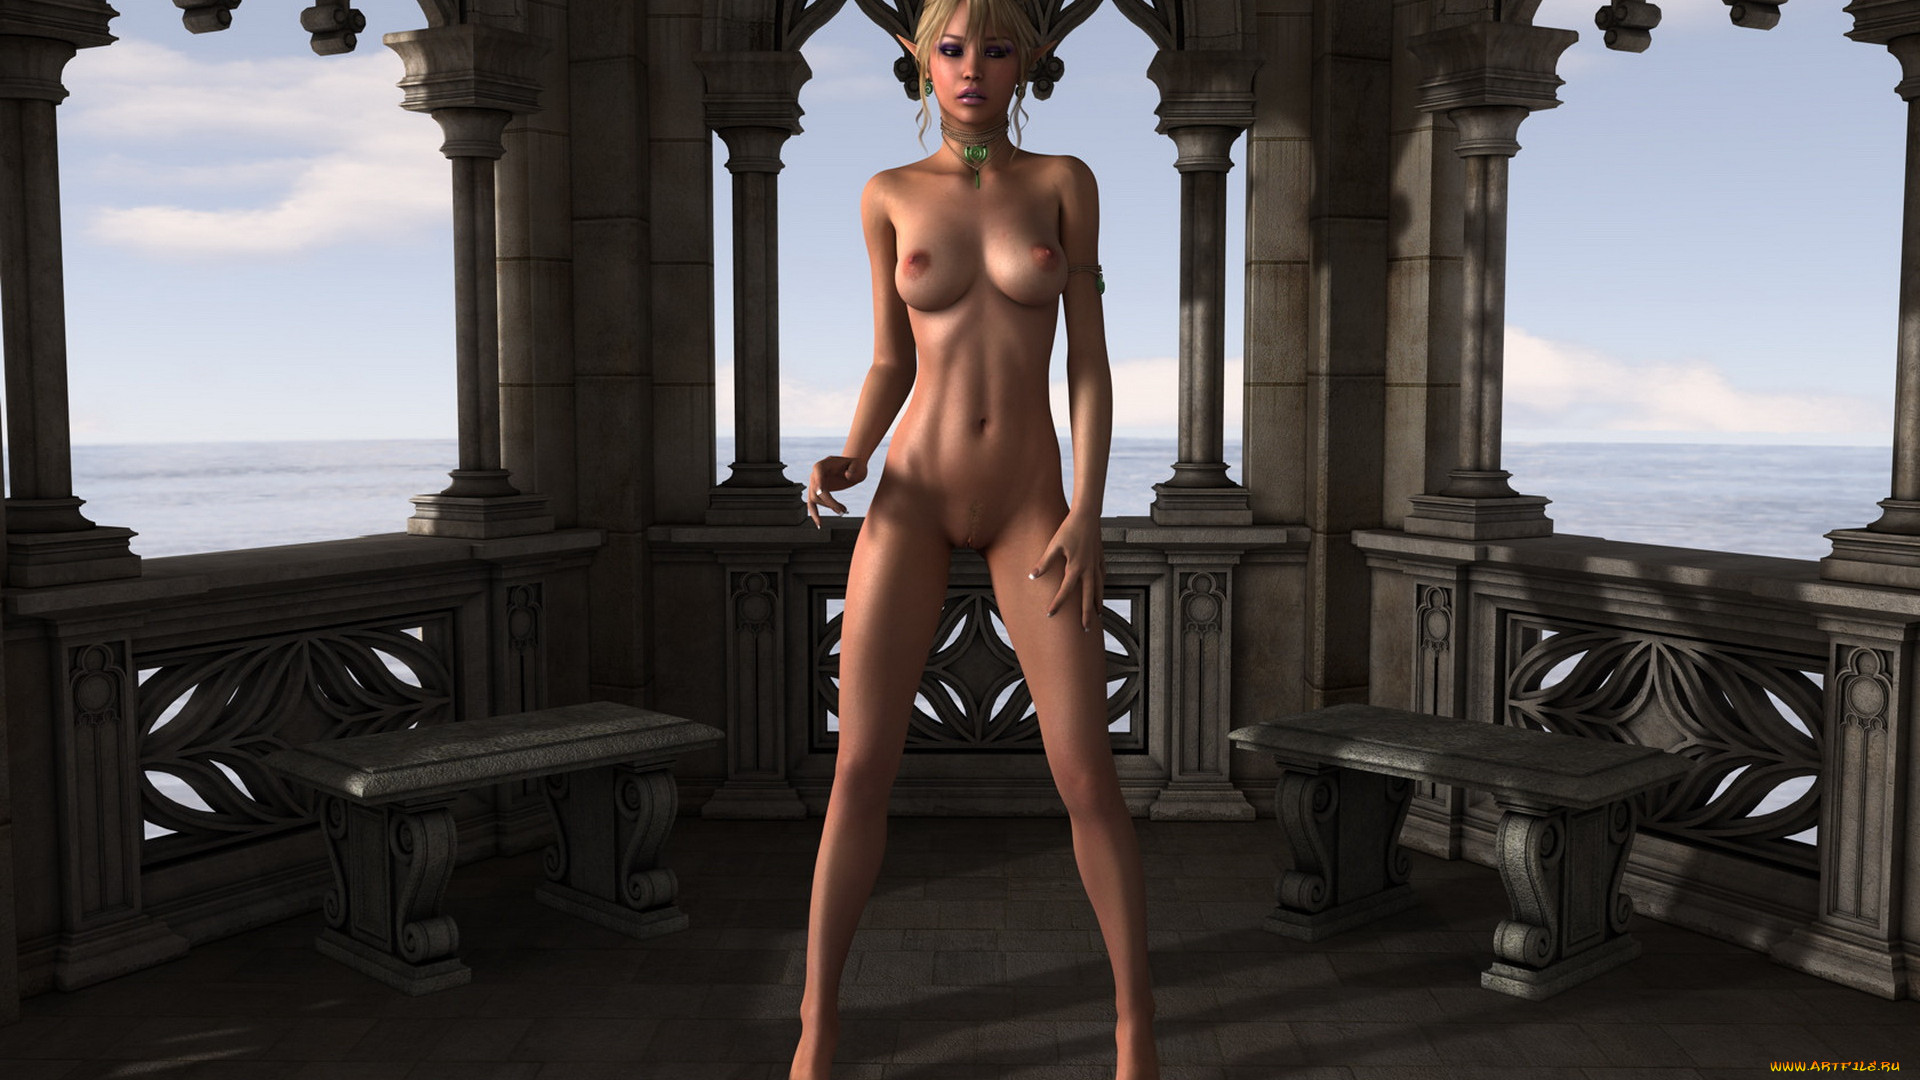 3d cg erotic monster wallpaper porn streaming